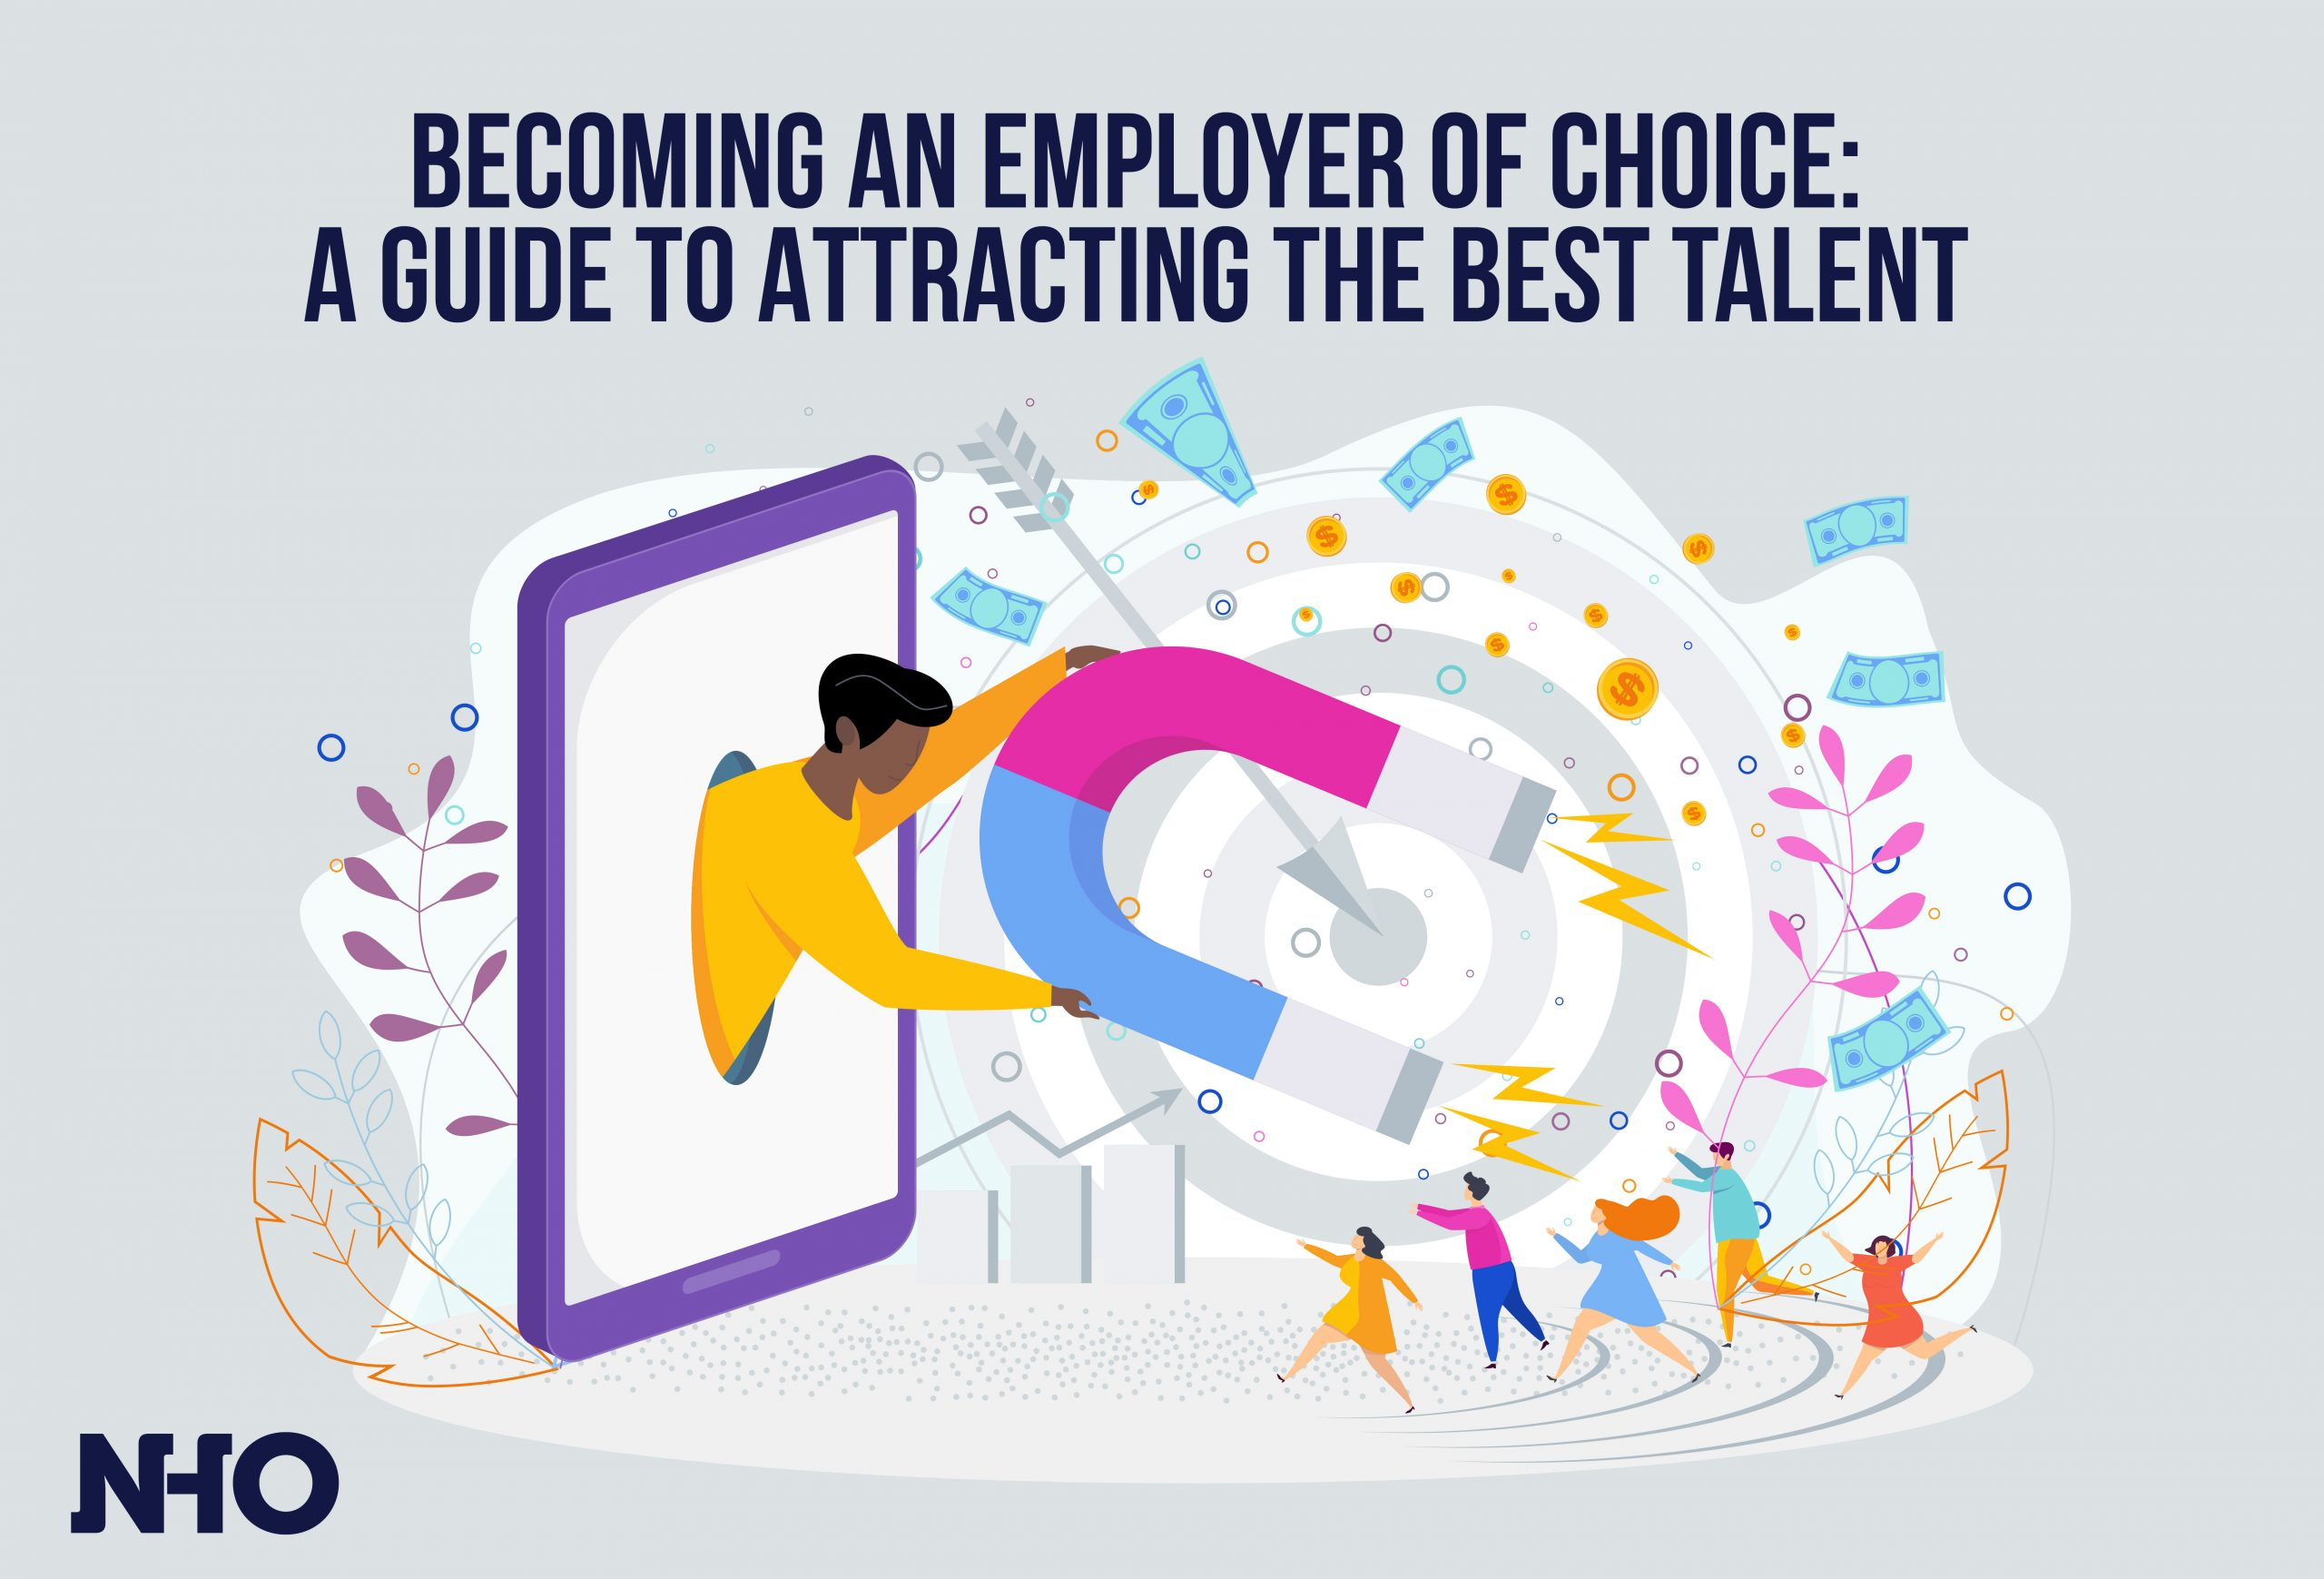 Becoming an Employer of Choice: A Guide to Attracting the Best Talent